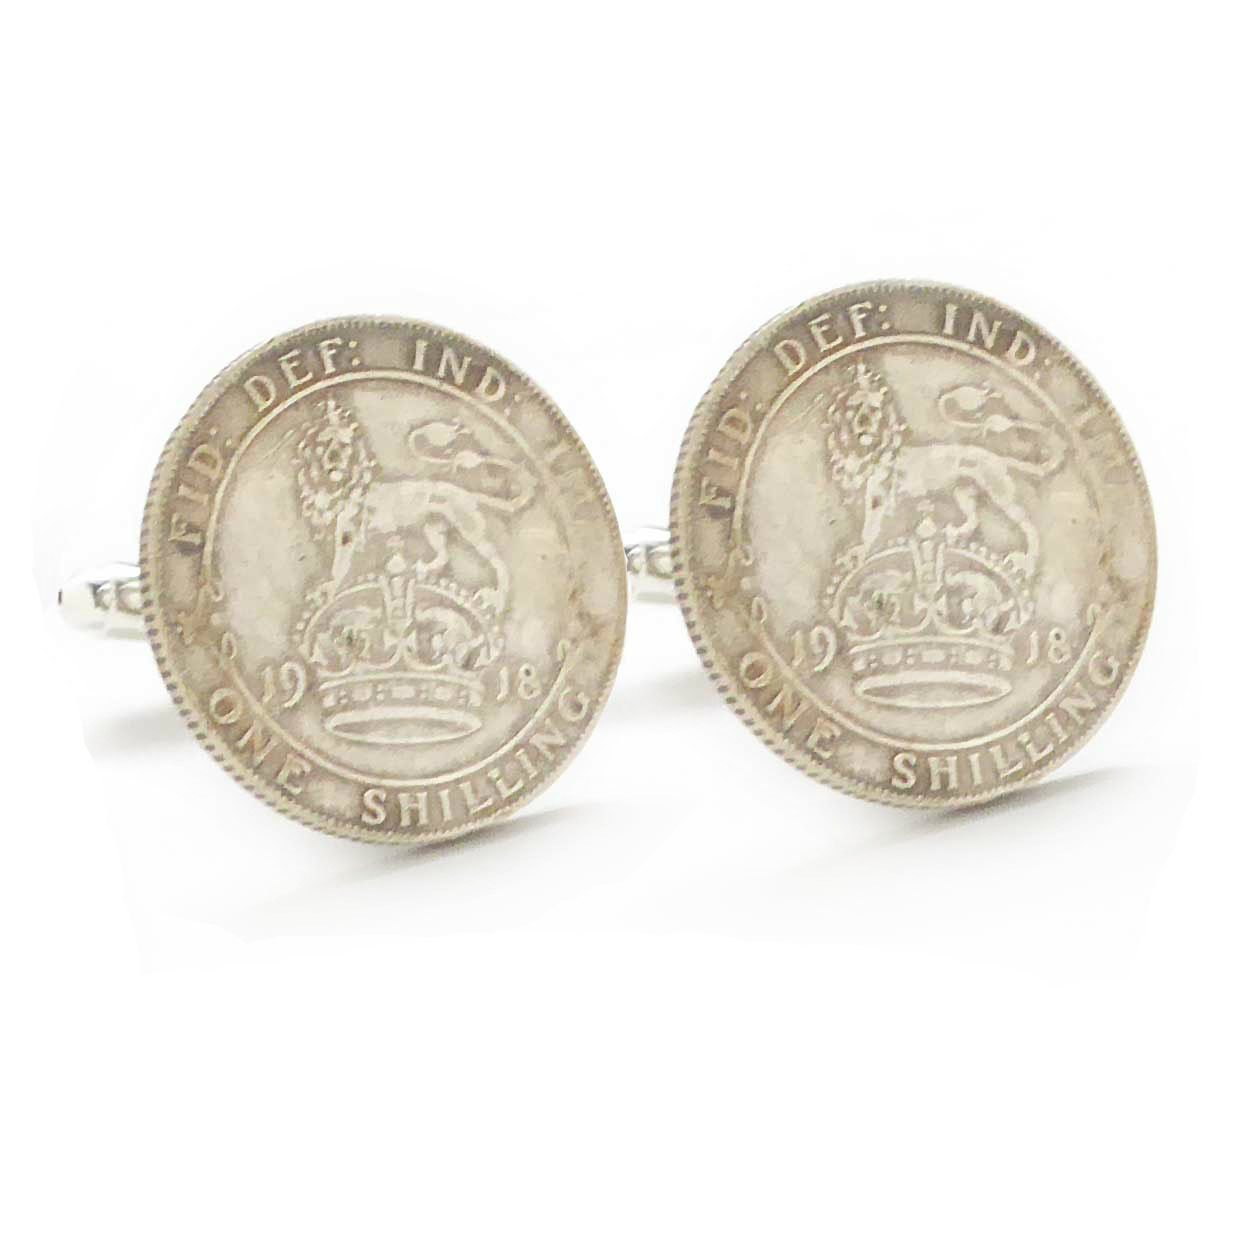 Silver Shillings Cufflinks Cuff Links Coin British UK King Crown Queen Royal England Seal WWI